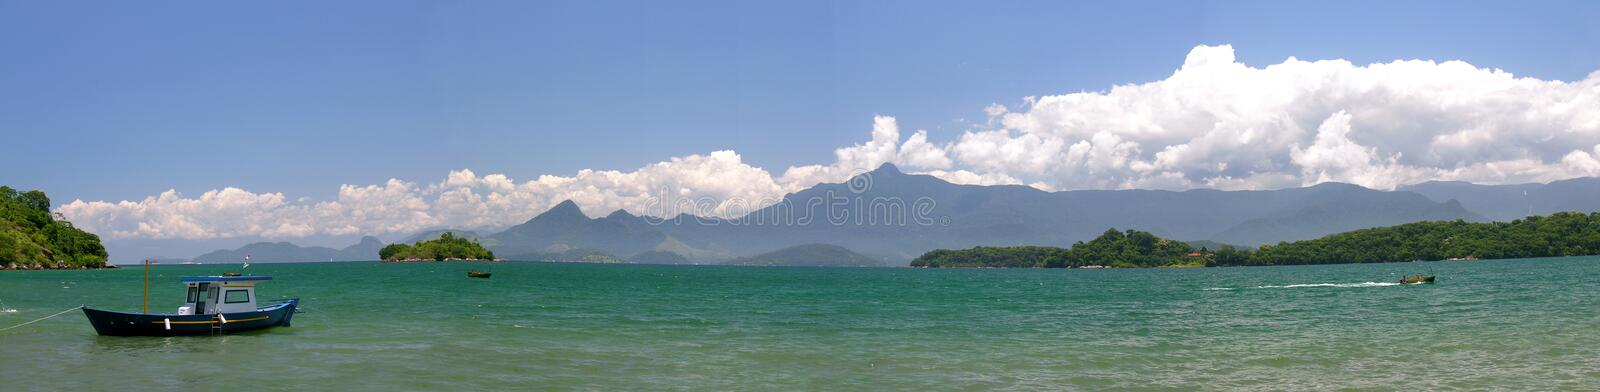 Tropical beach panoramic royalty free stock photography